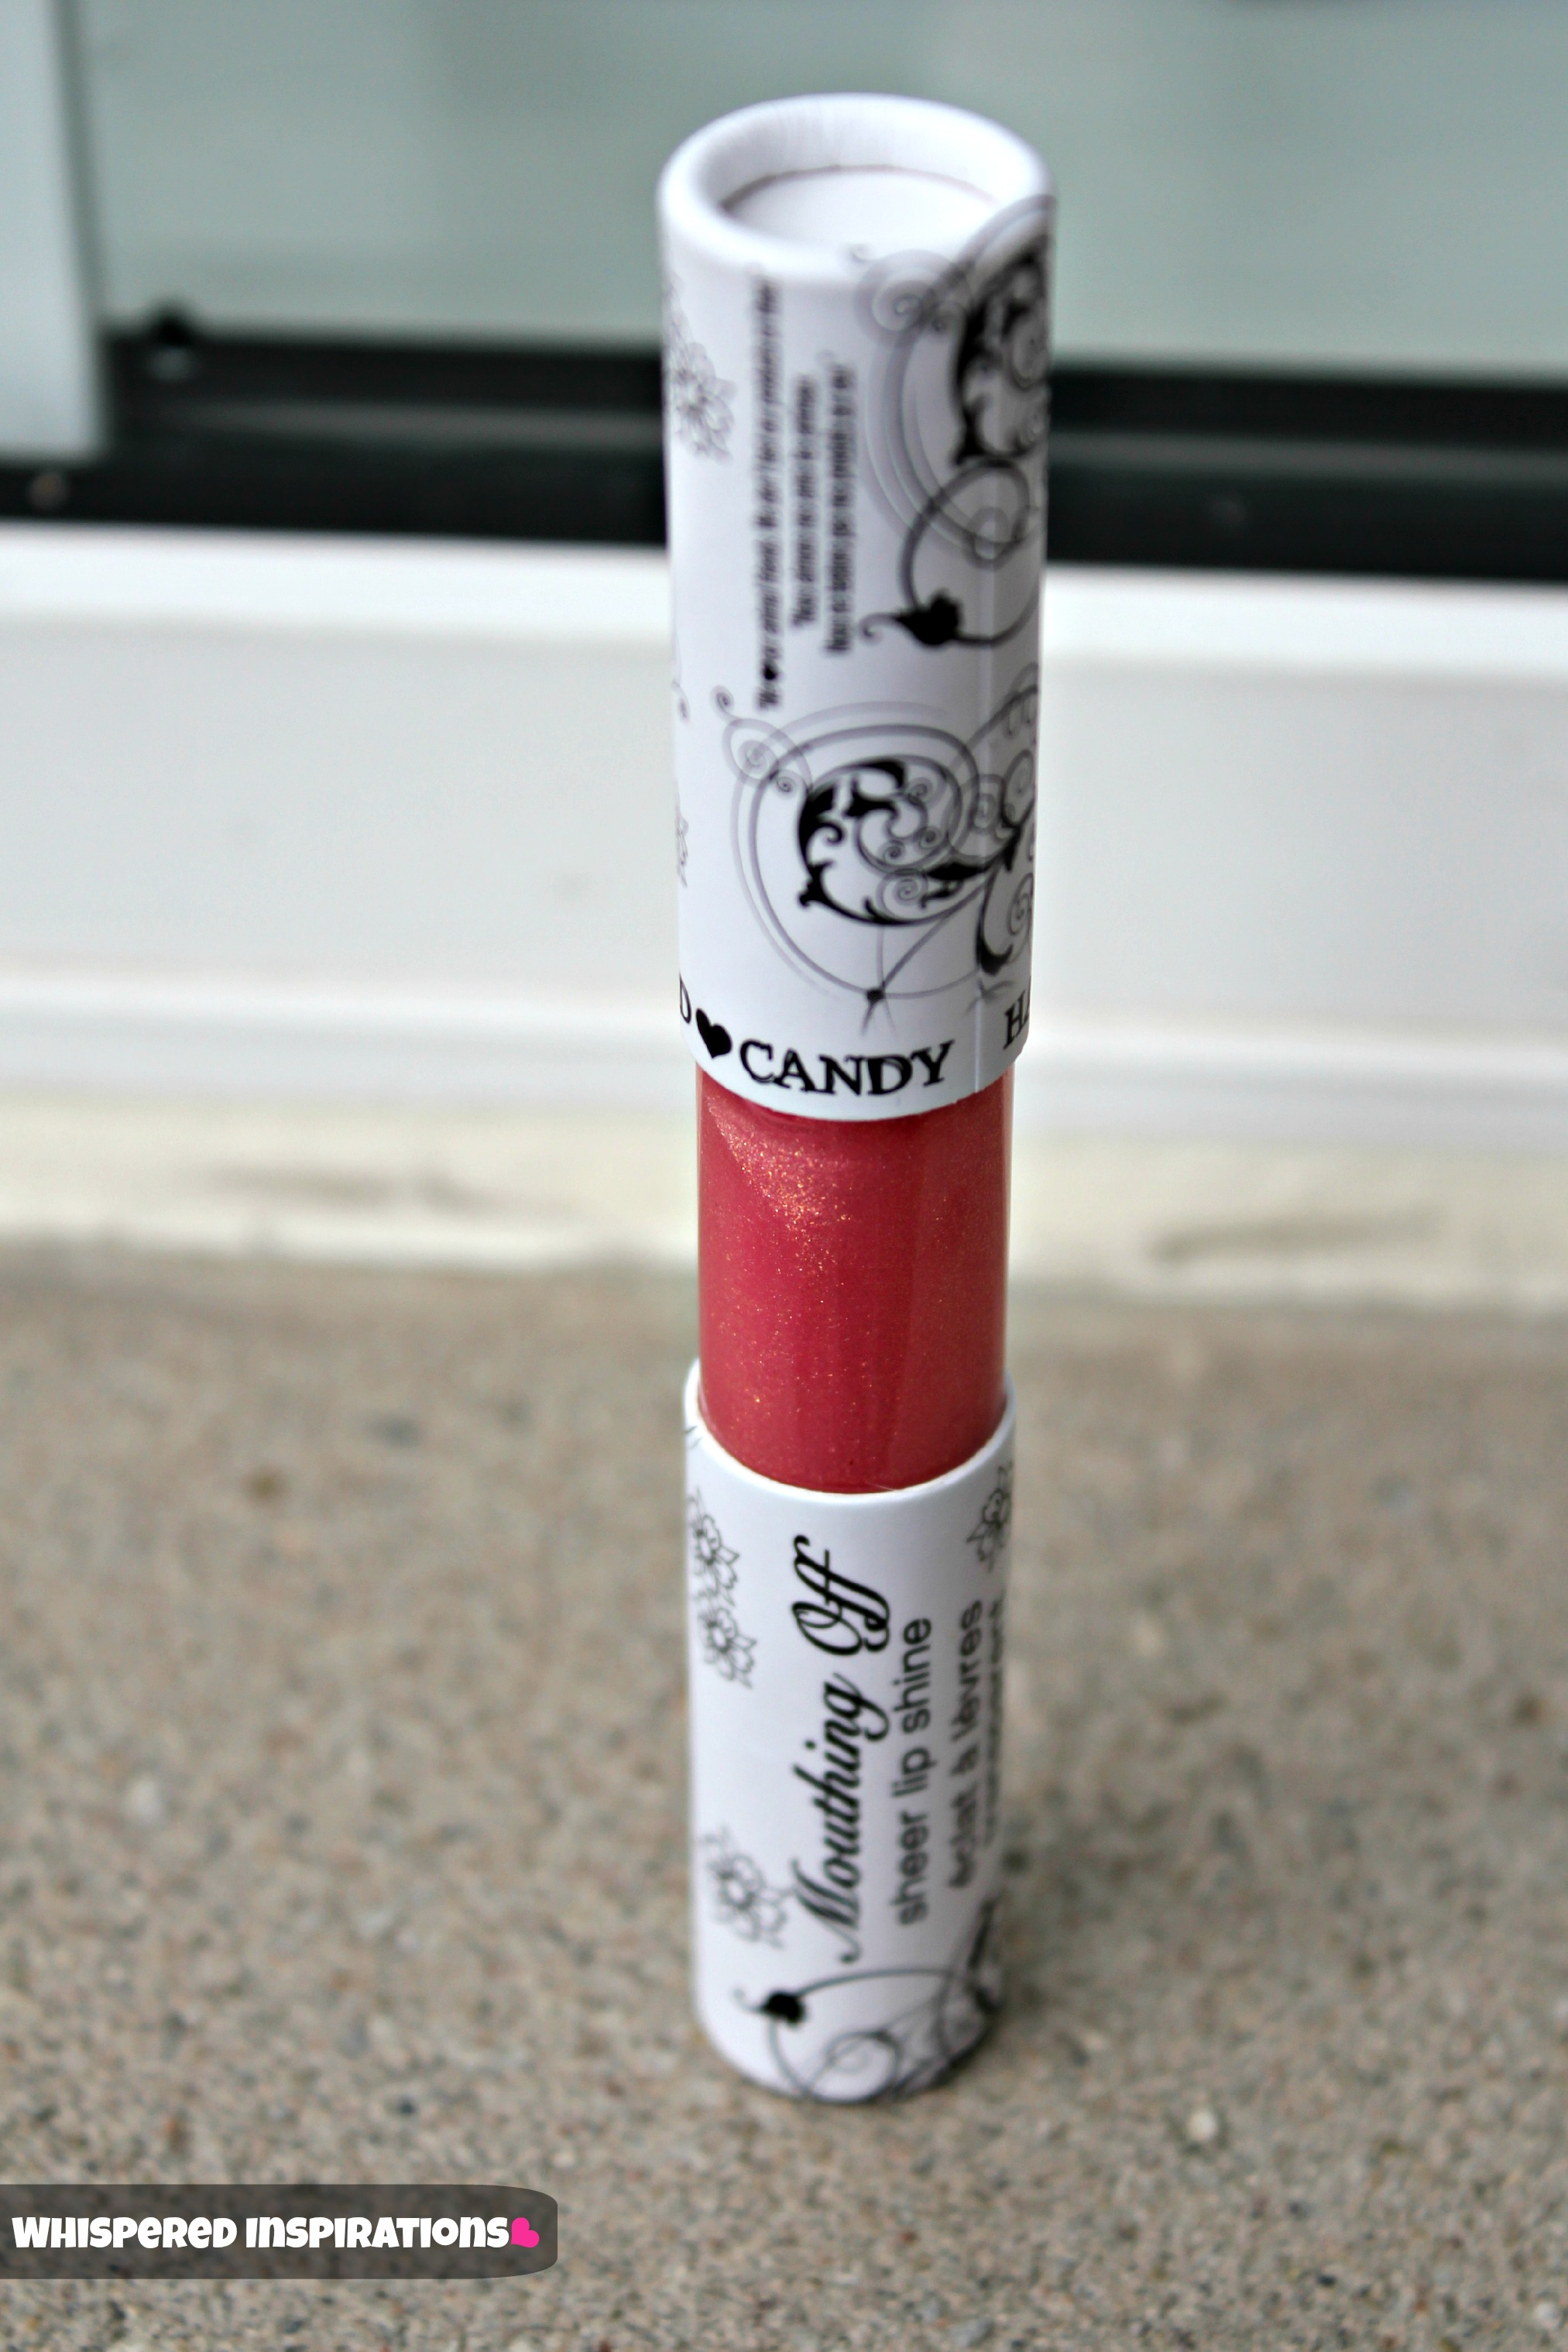 Hard Candy Review: Lashaholic Big Bad Lashes Mascara, Mouthing Off Lip Shine and Glow Away Bronzer and Highlighter Duo!